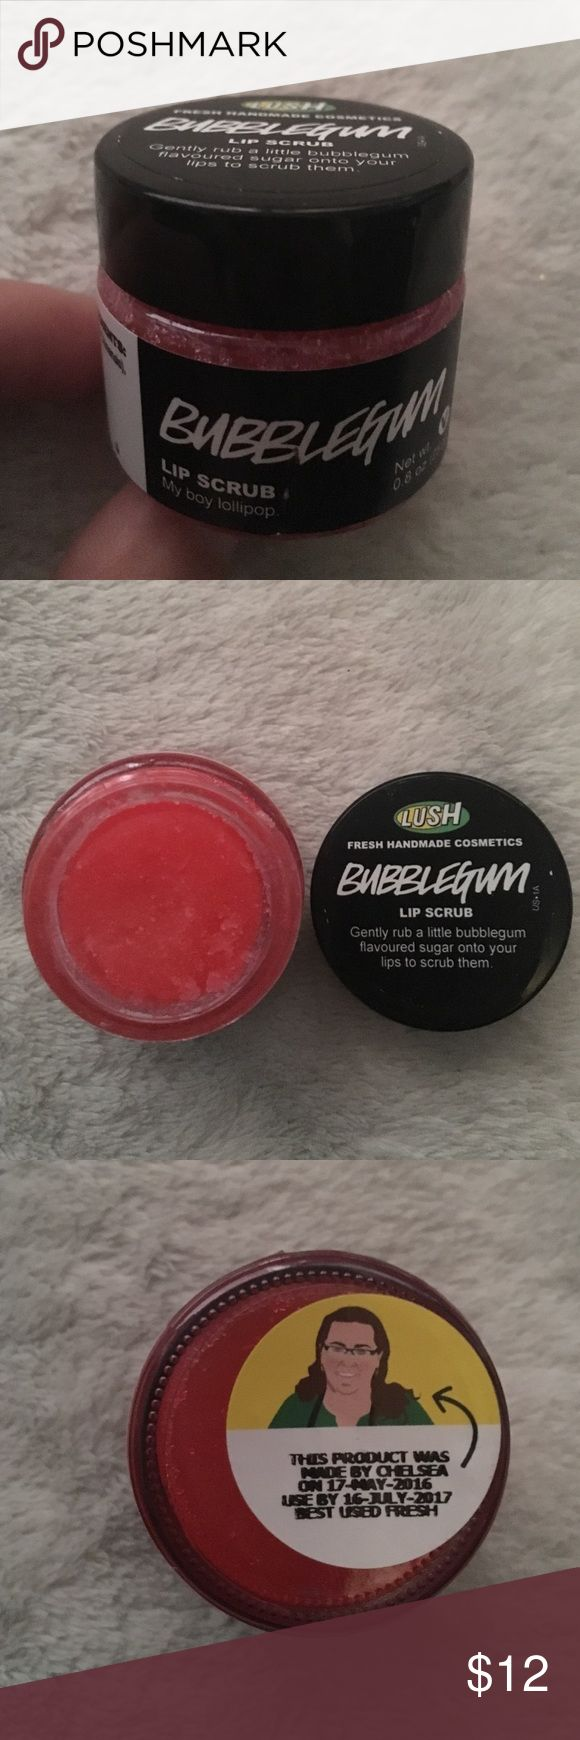 Lush Bubblegum Lip Scrub Unused lush lip scrub in bubblegum. Brand new. Got as a gift, but I already have one. Great stuff made in a San Francisco lush location. Great deal if bundled with another item! Lush Other